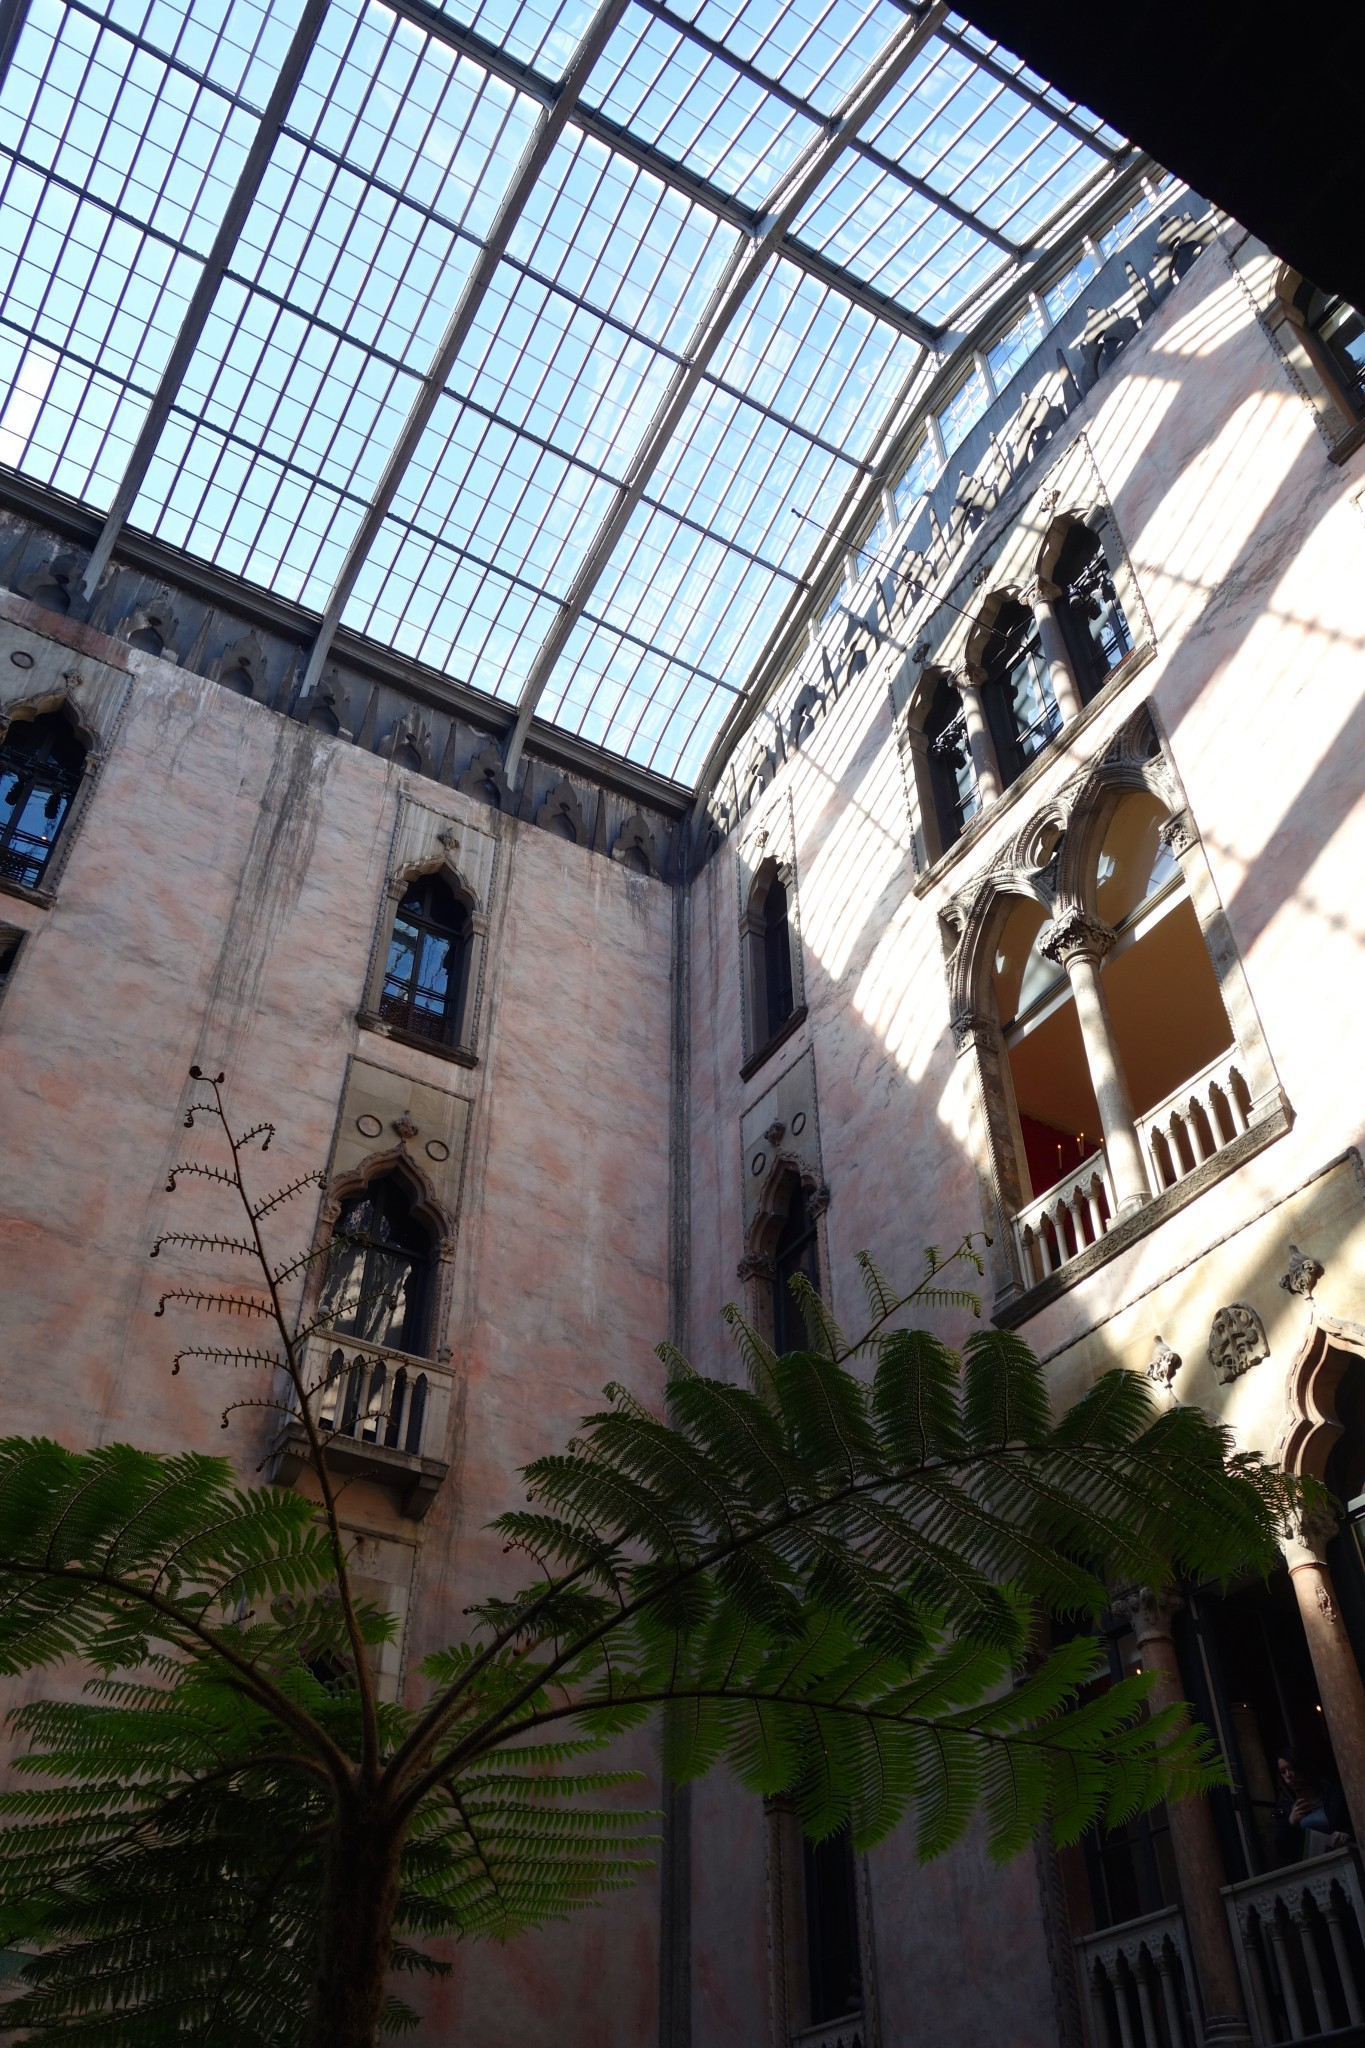 isabella stewart gardner museum, boston, the-alyst.comisabella stewart gardner museum, boston, the-alyst.com